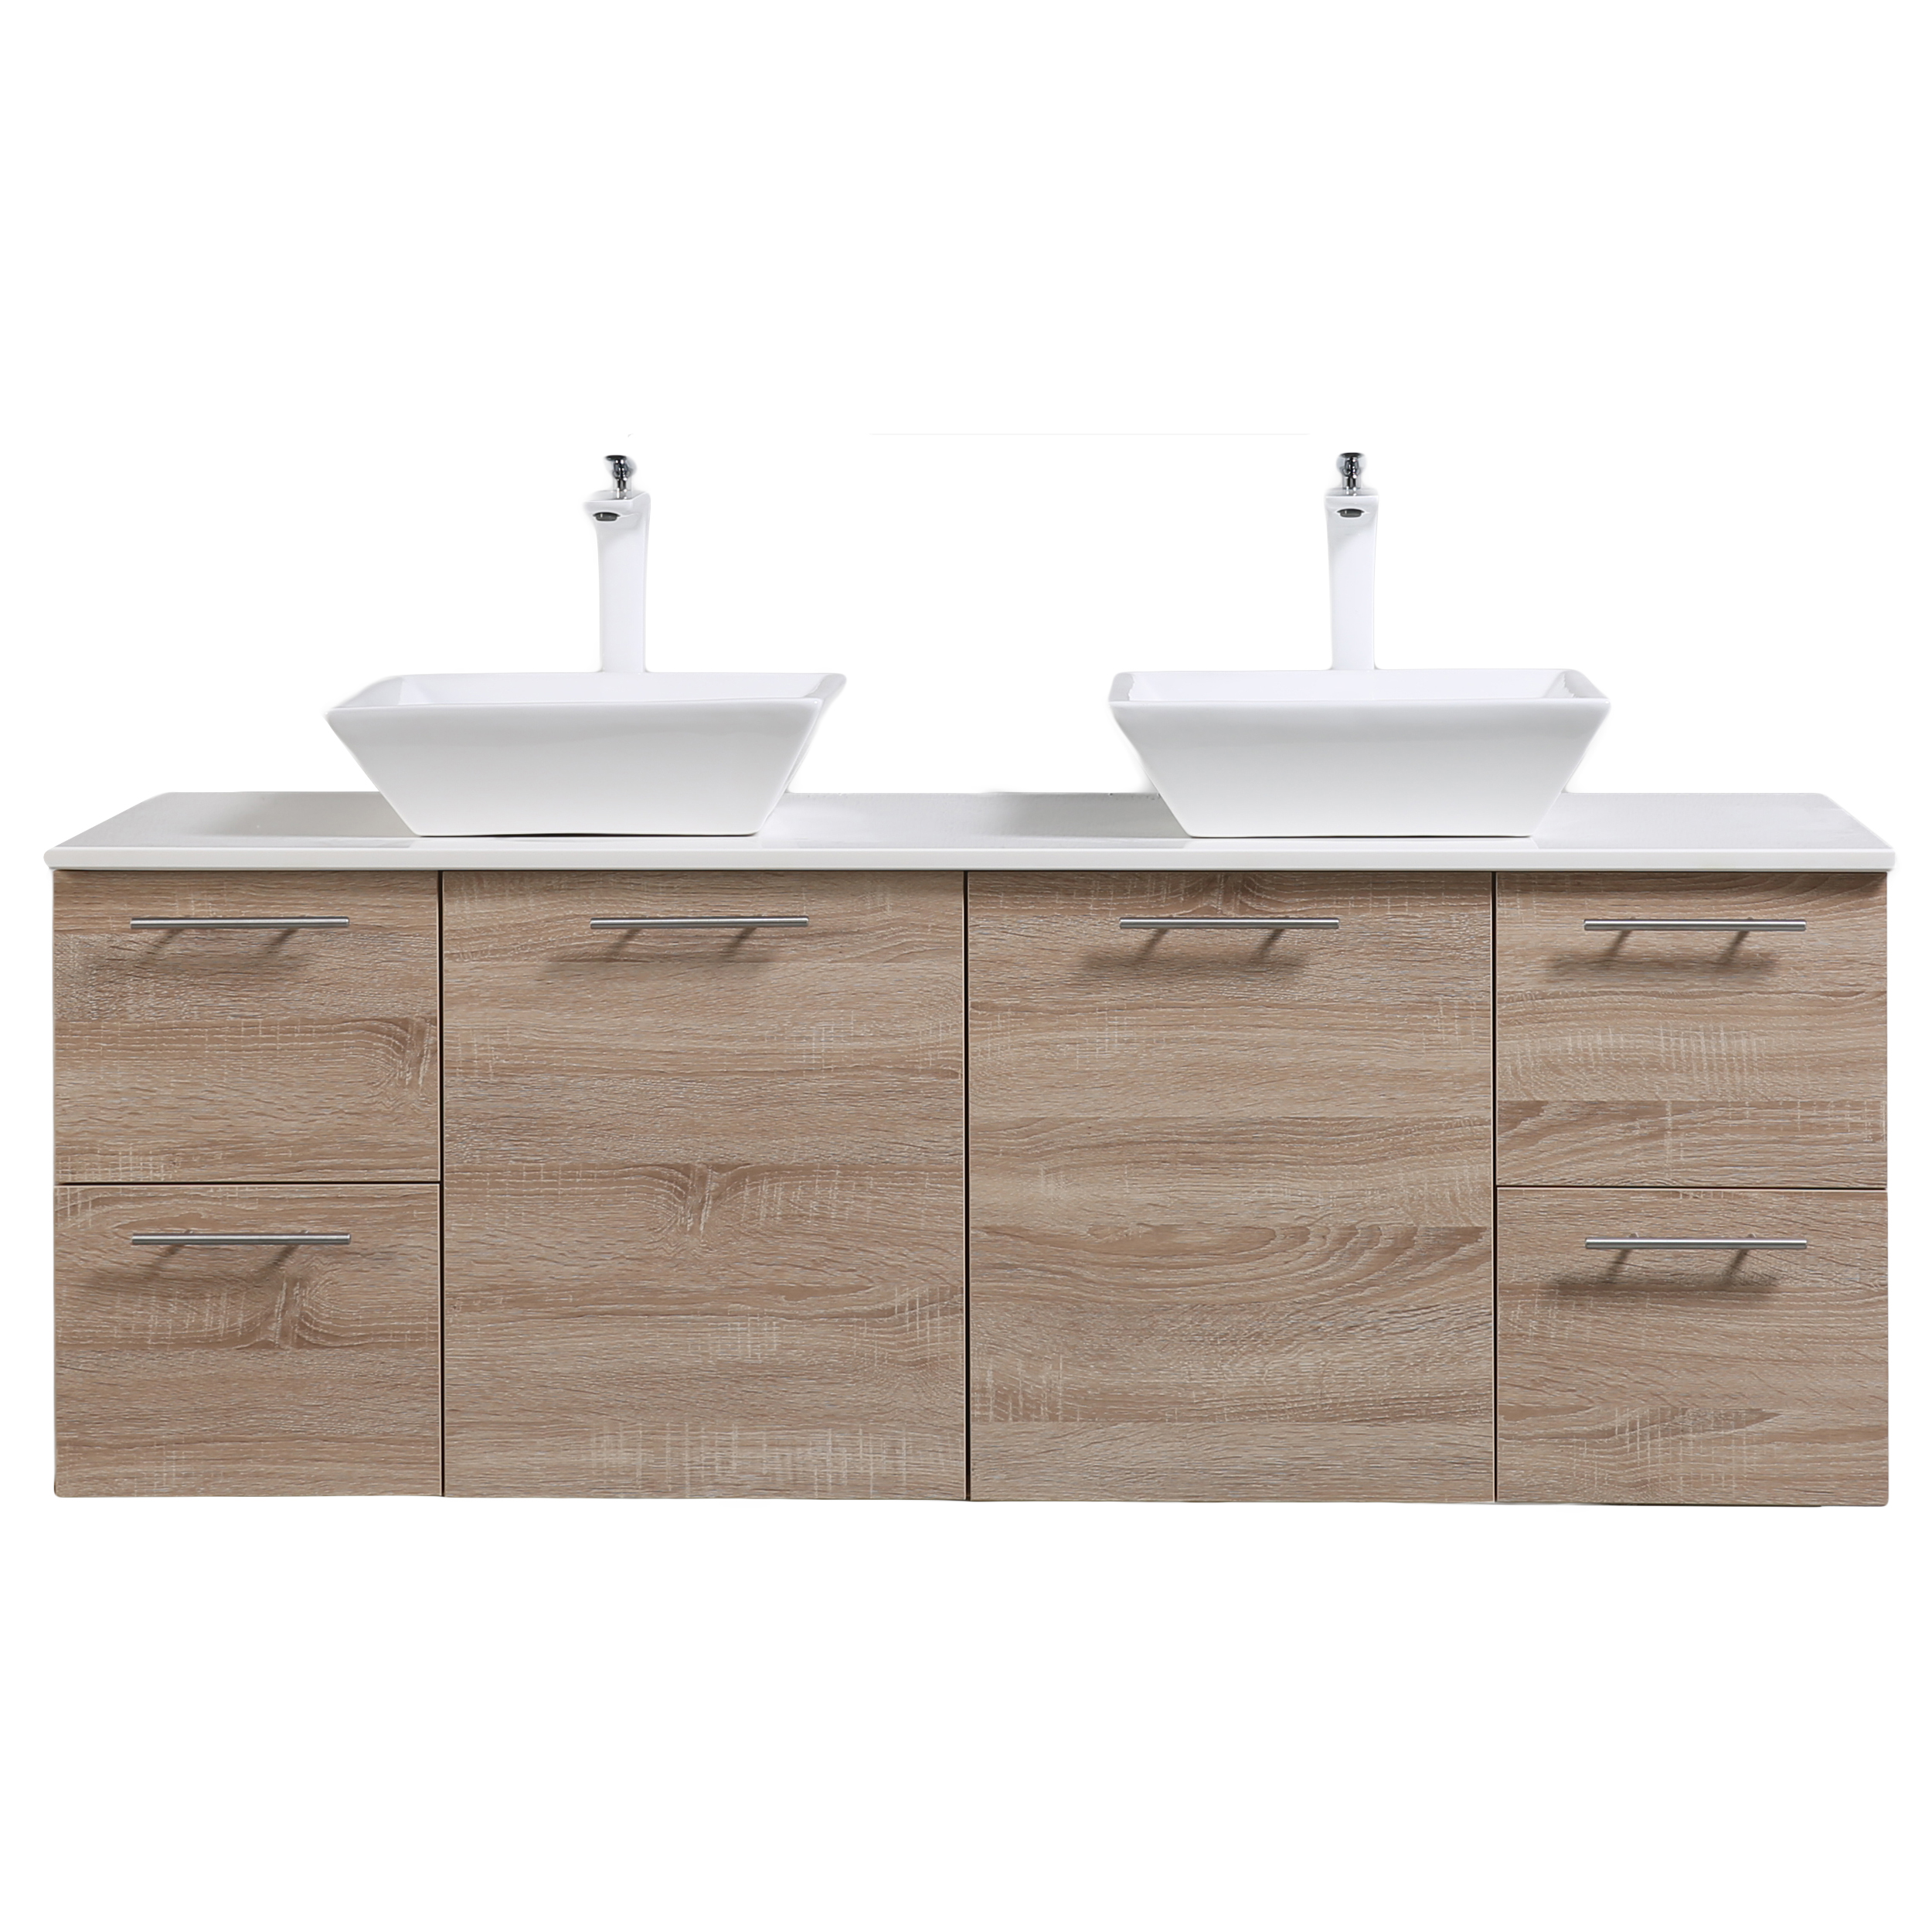 bathroom for best wholesale inch narrow the vanities contemporary mount wall bathrooms ideas vanity cabinet modern designer small floating look